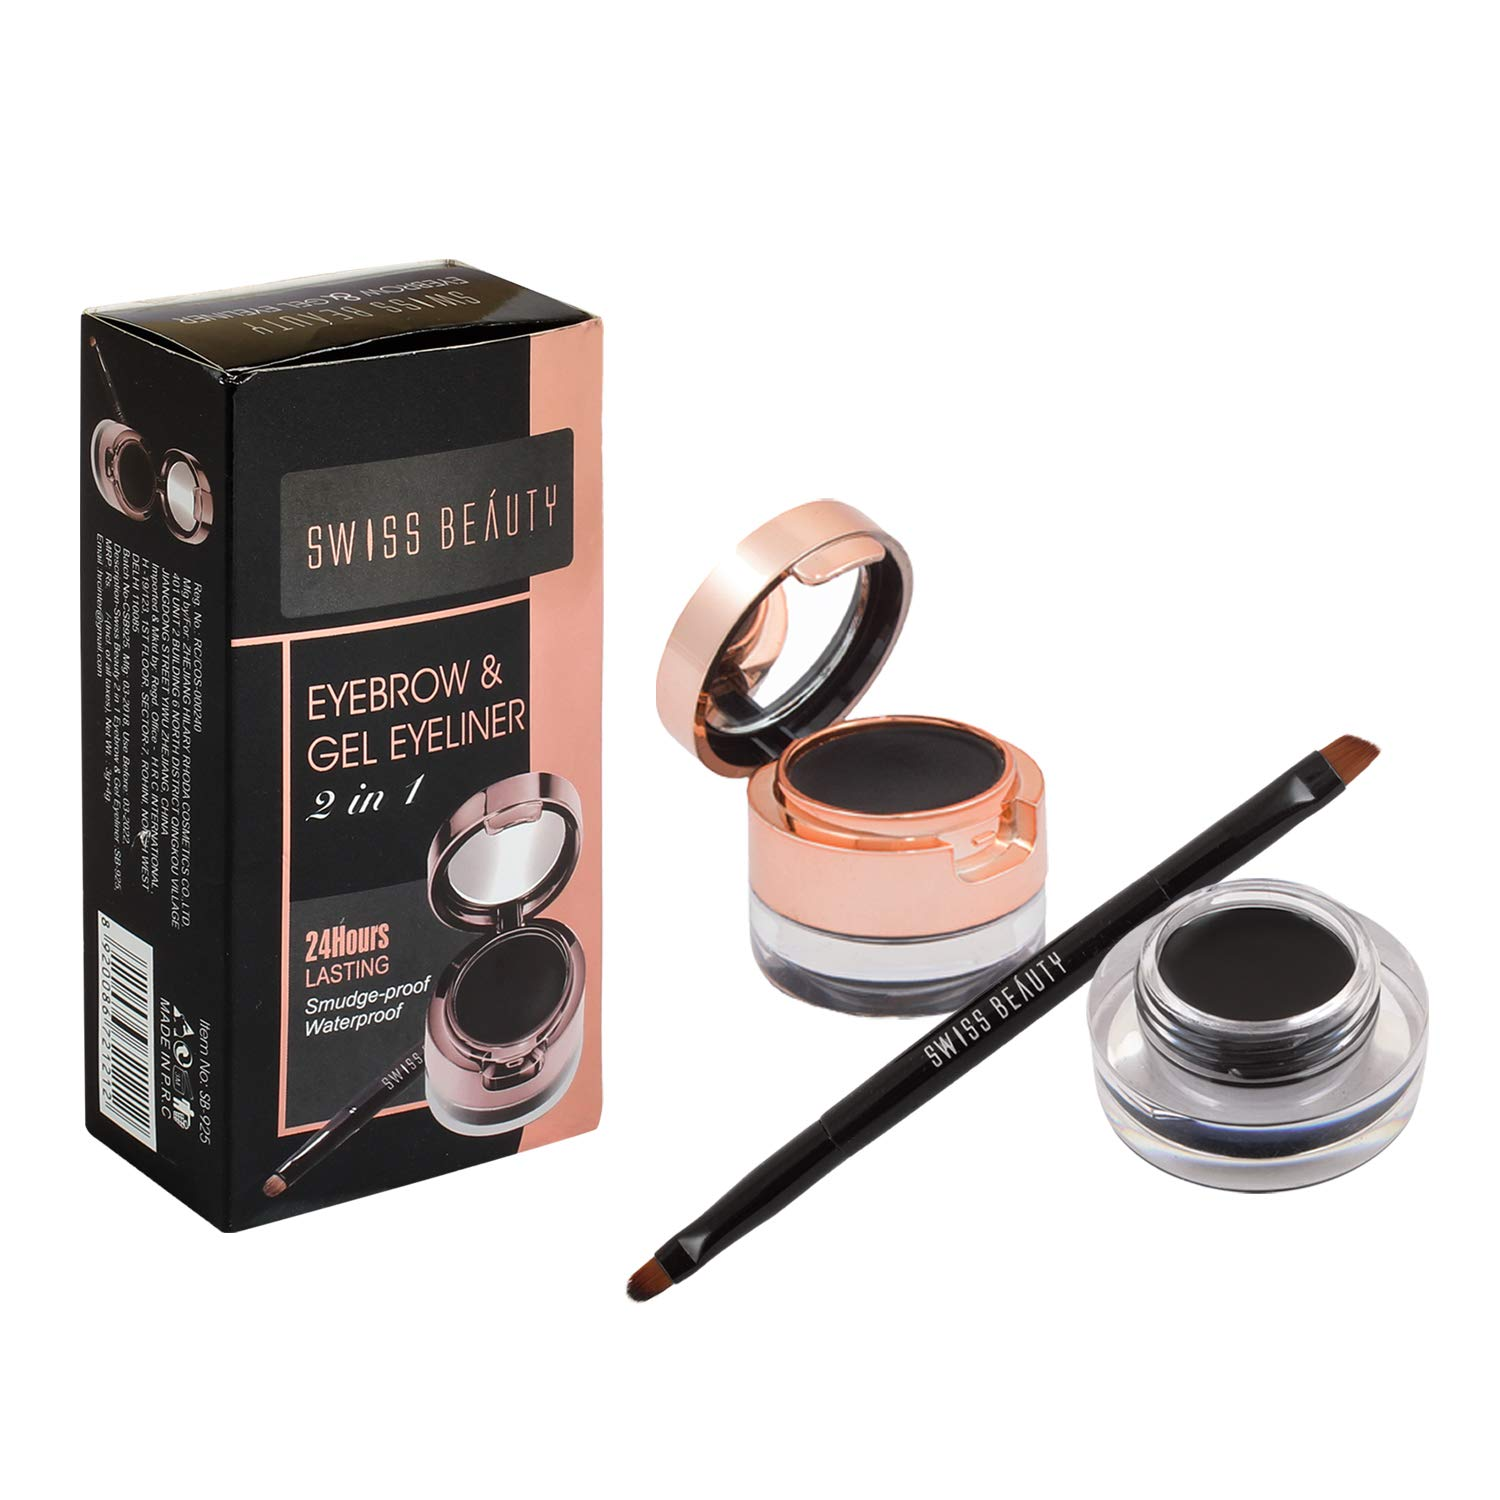 Swiss Beauty 2In1 Gel Eyeliner & Eyebrow Powder 24Hrs Smudge-Proof - Black product image